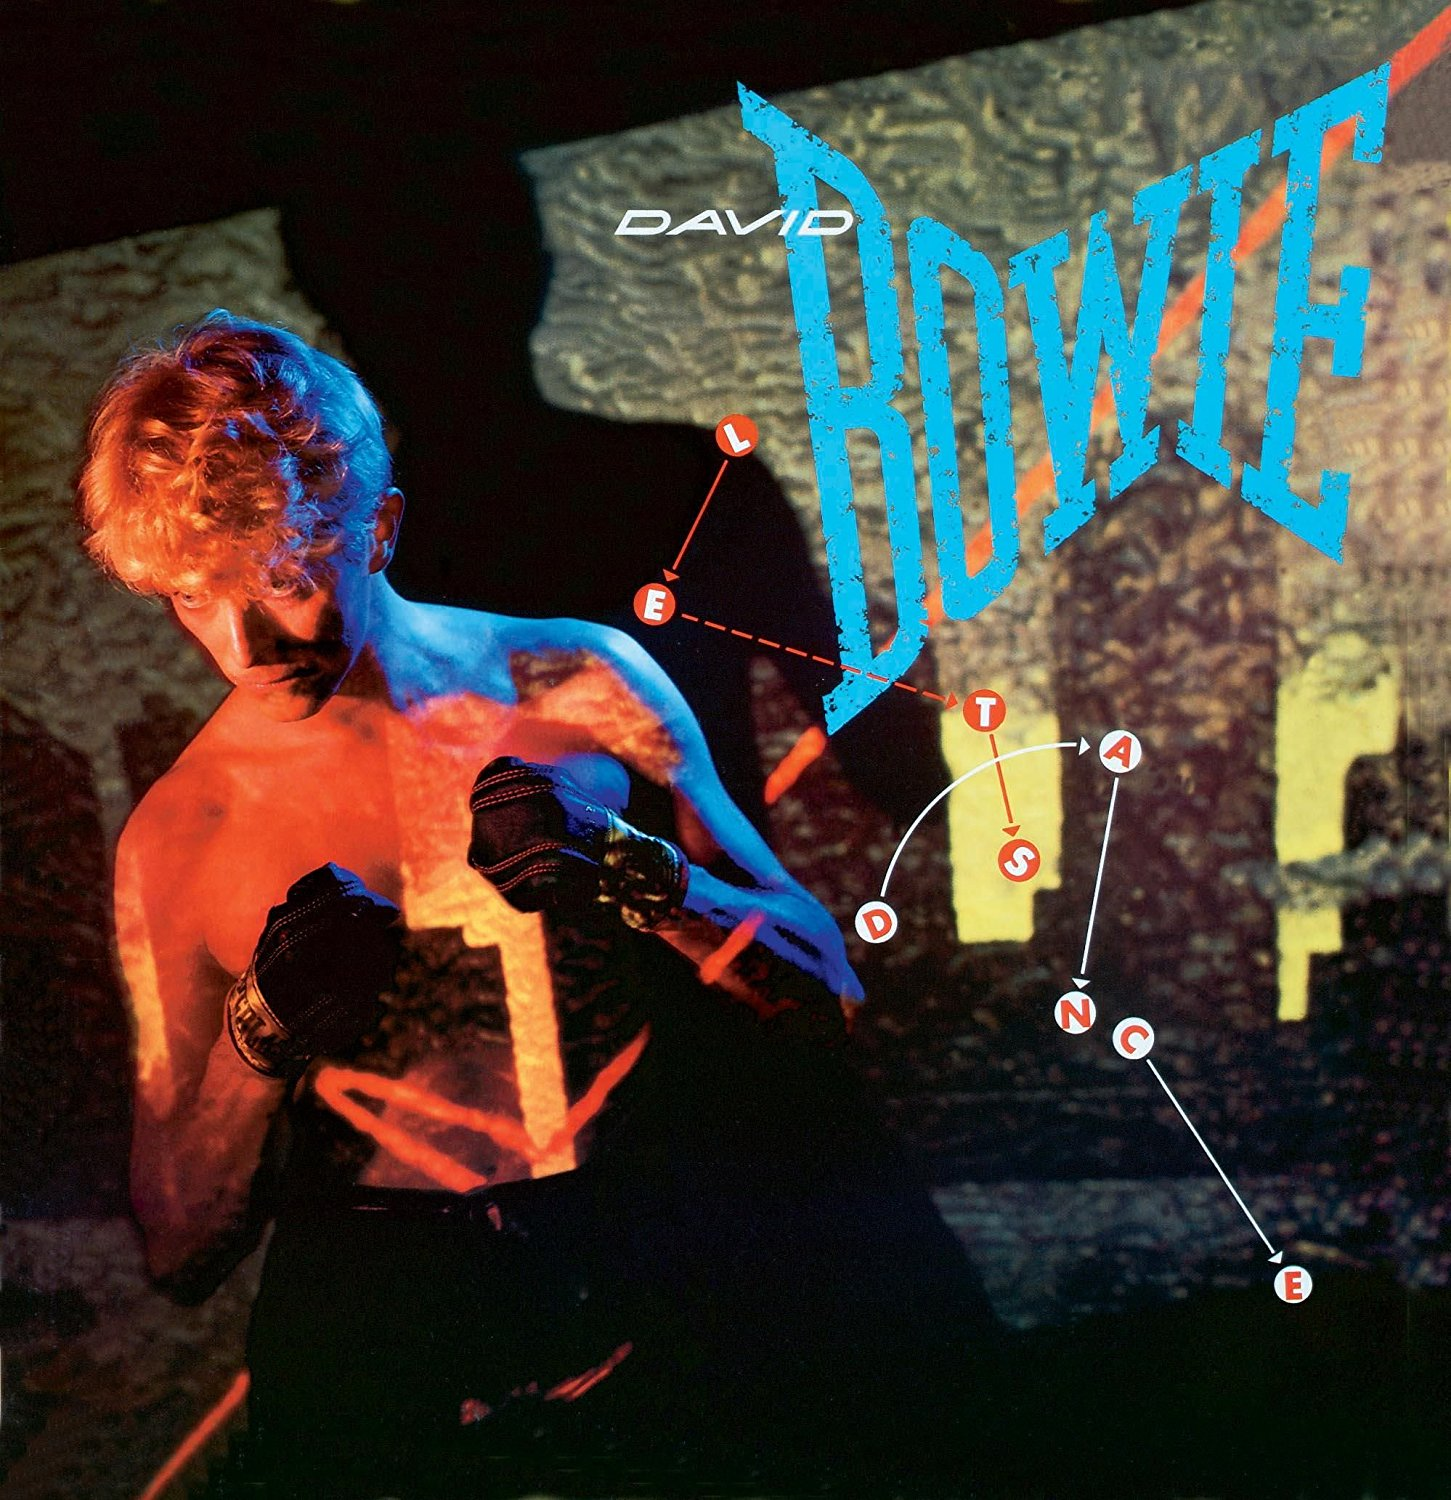 David Bowie Let's Dance review